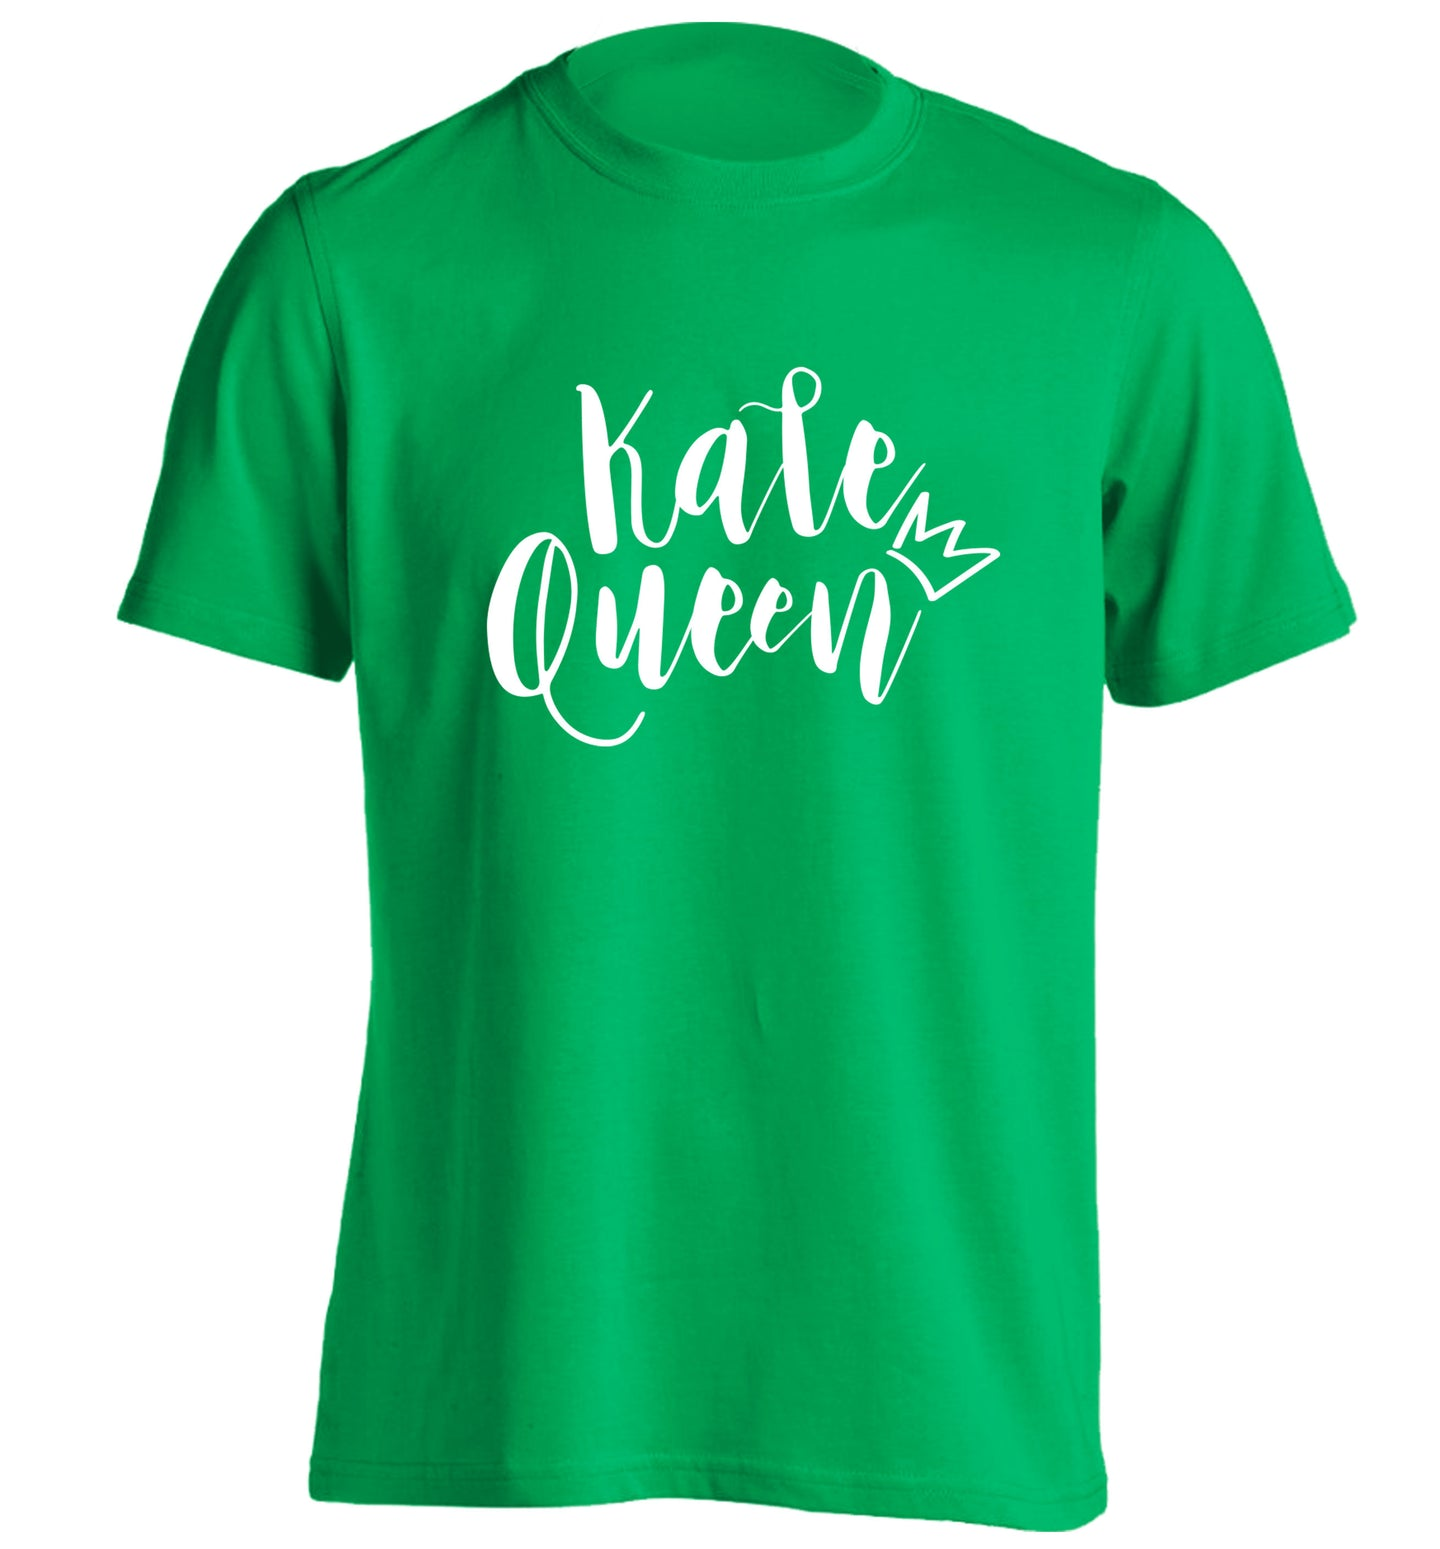 Kale Queen adults unisex green Tshirt 2XL